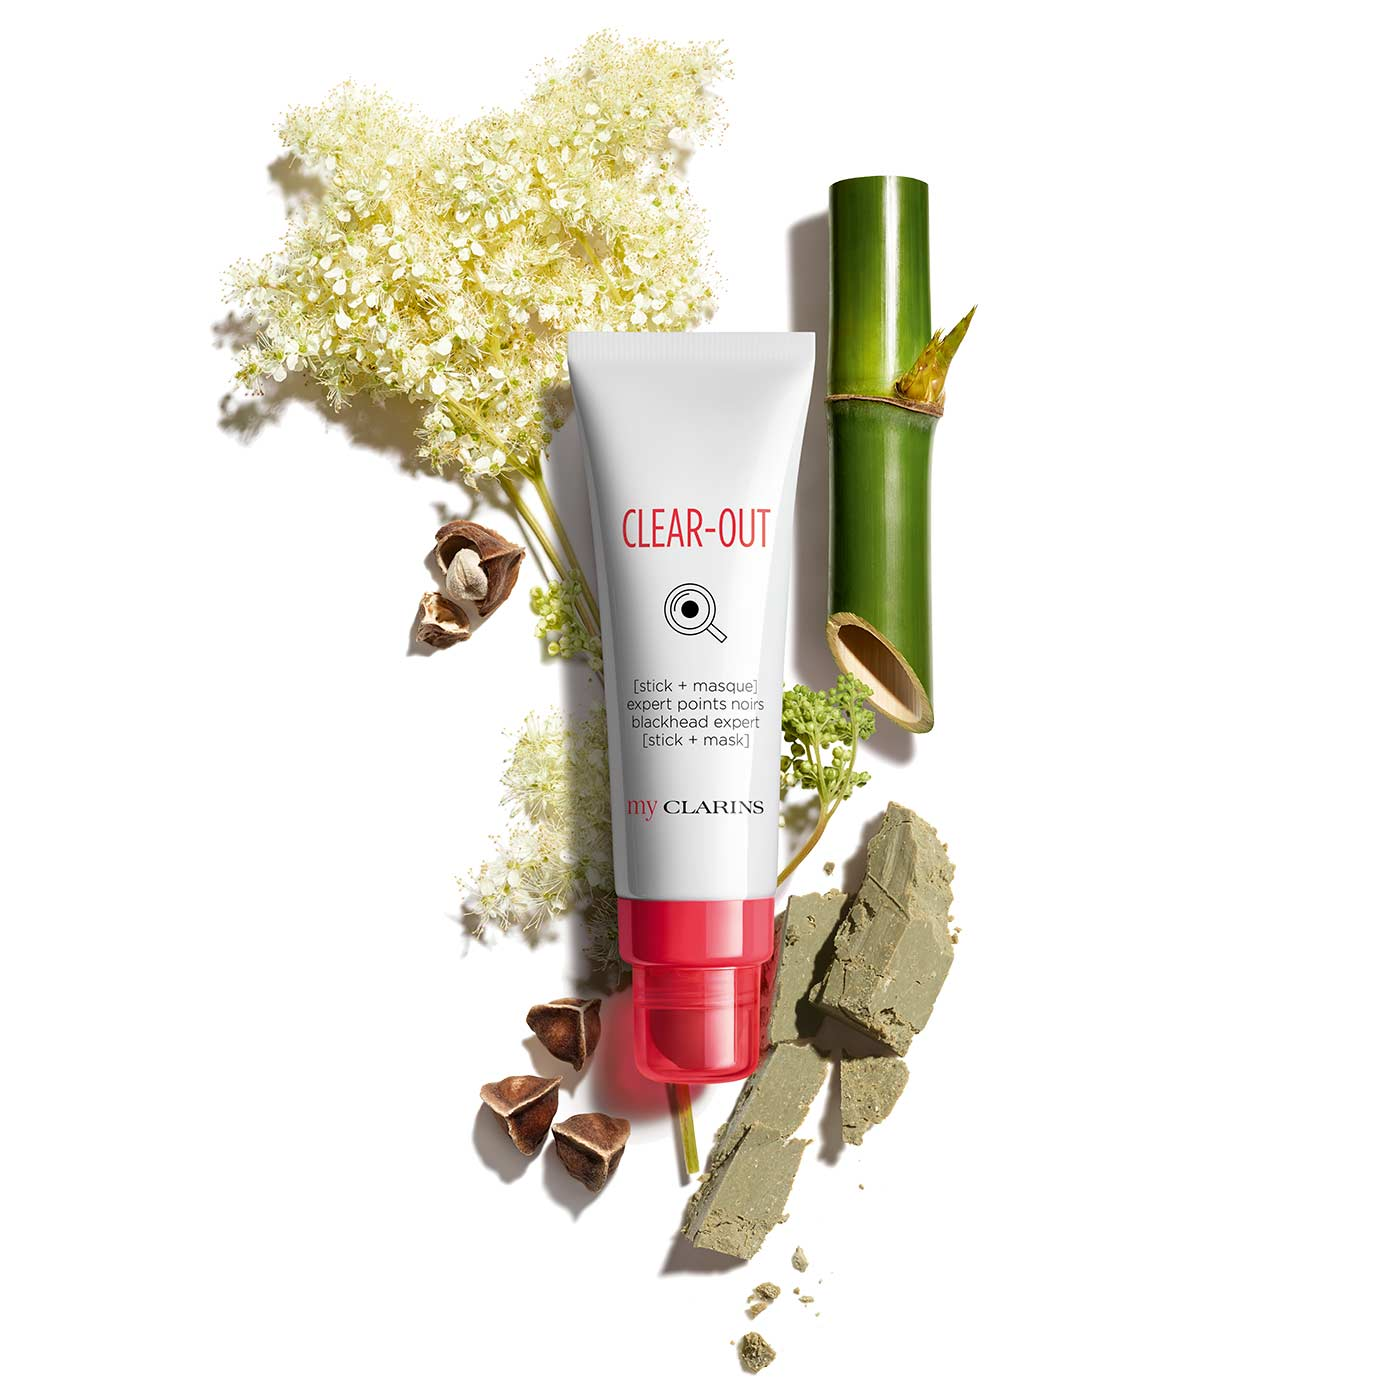 Clarins Clear-Out Mascarilla Stick Puntos Negros